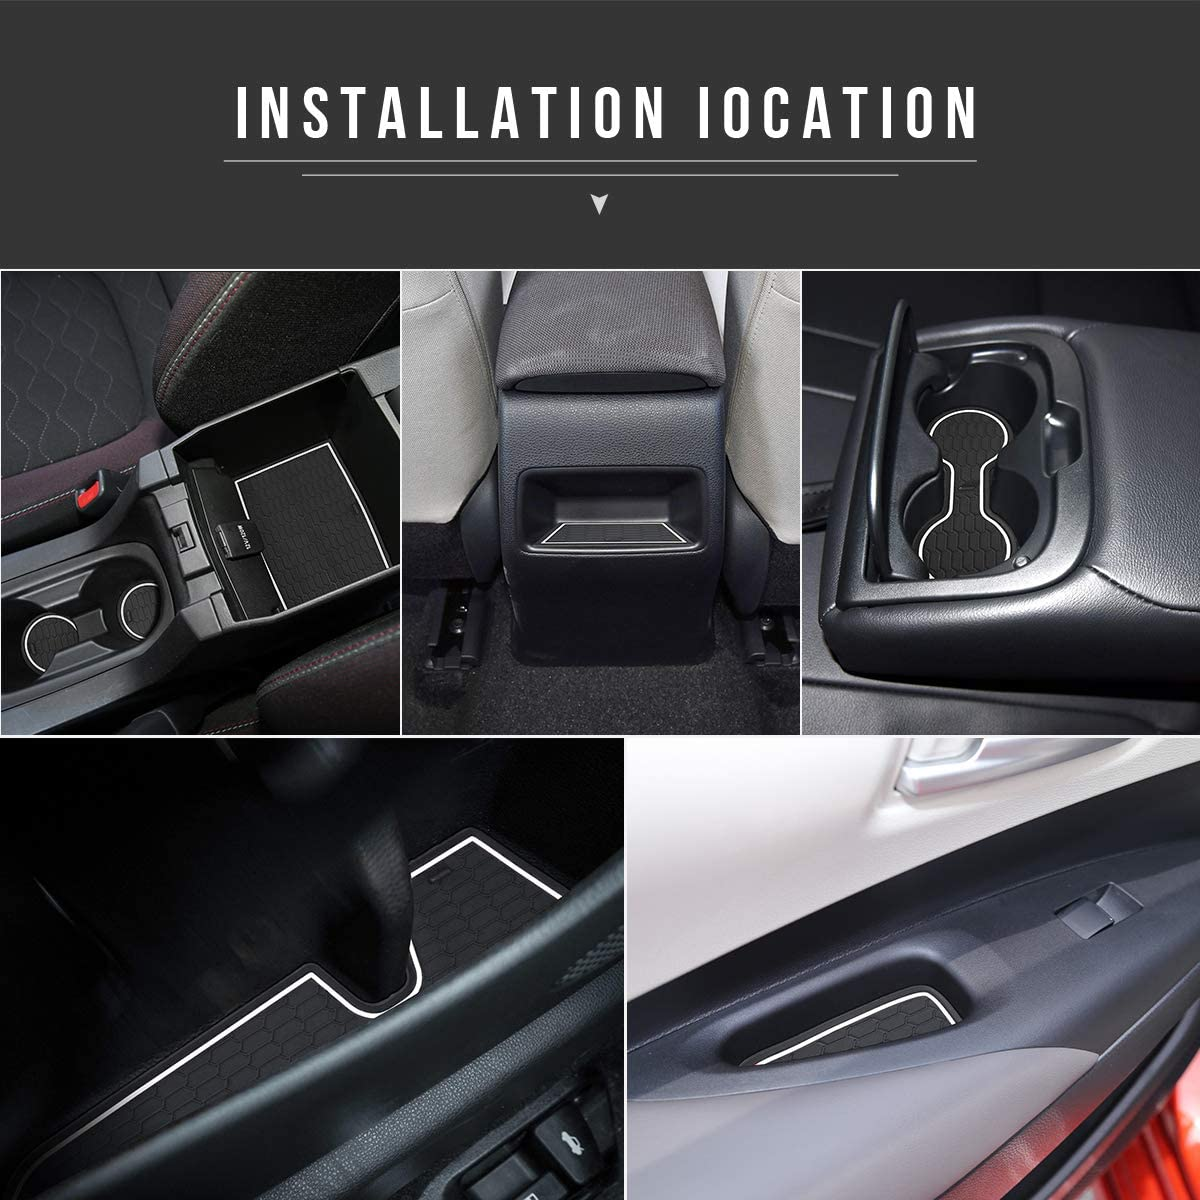 Auovo Anti Dust Mats for Toyota Corolla Hatchback 2019 2020 2021 Accessories Custom Fit Cup Holder Inserts Door Liners 11pcs//Set White